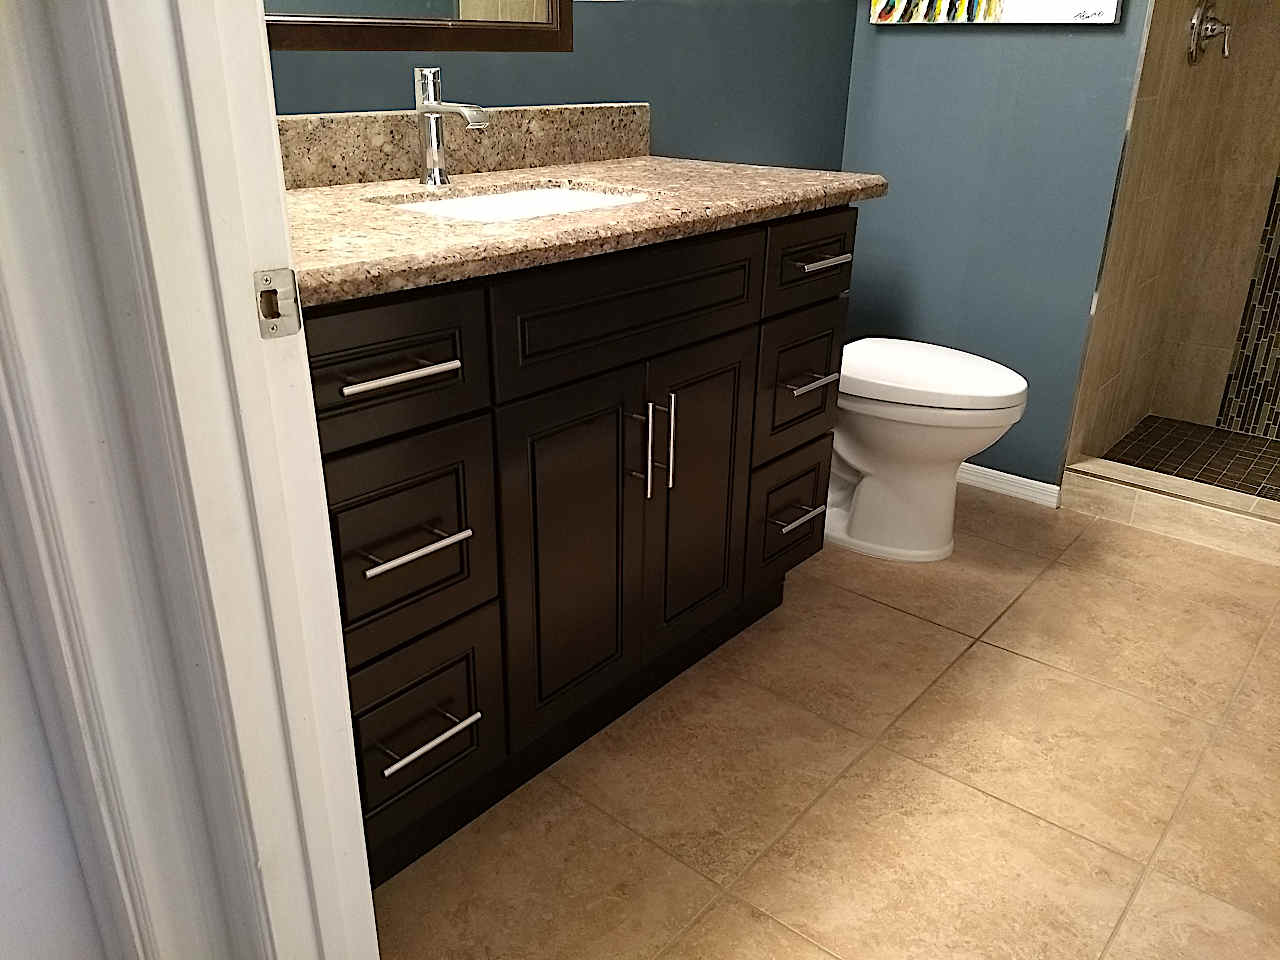 Scottsdale-bathroom-remodel-vanity-1280-1